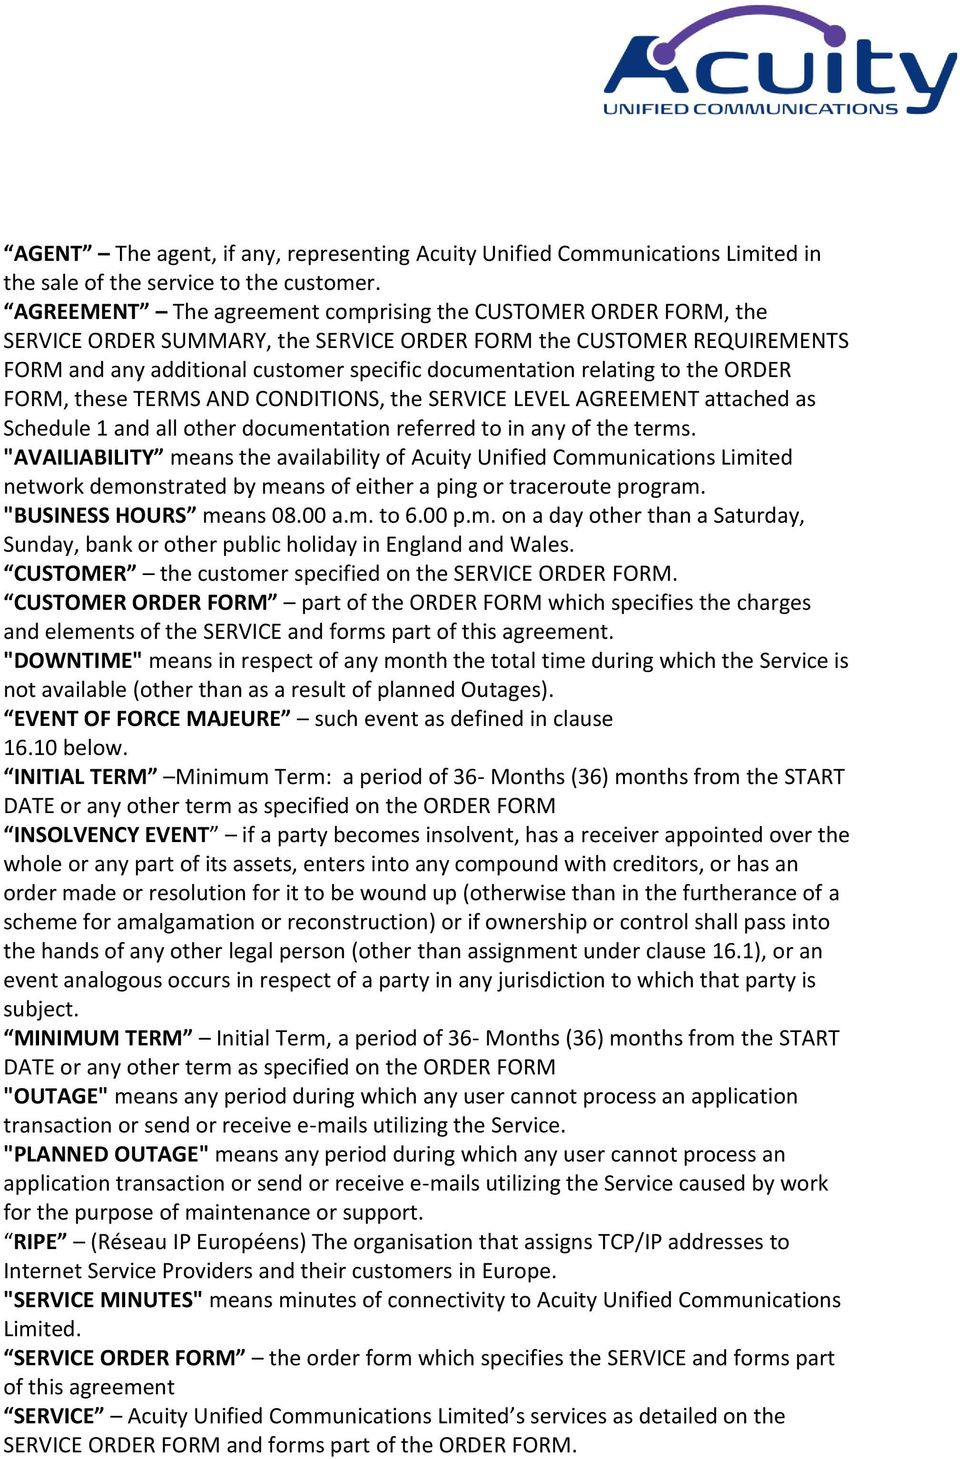 relating to the ORDER FORM, these TERMS AND CONDITIONS, the SERVICE LEVEL AGREEMENT attached as Schedule 1 and all other documentation referred to in any of the terms.